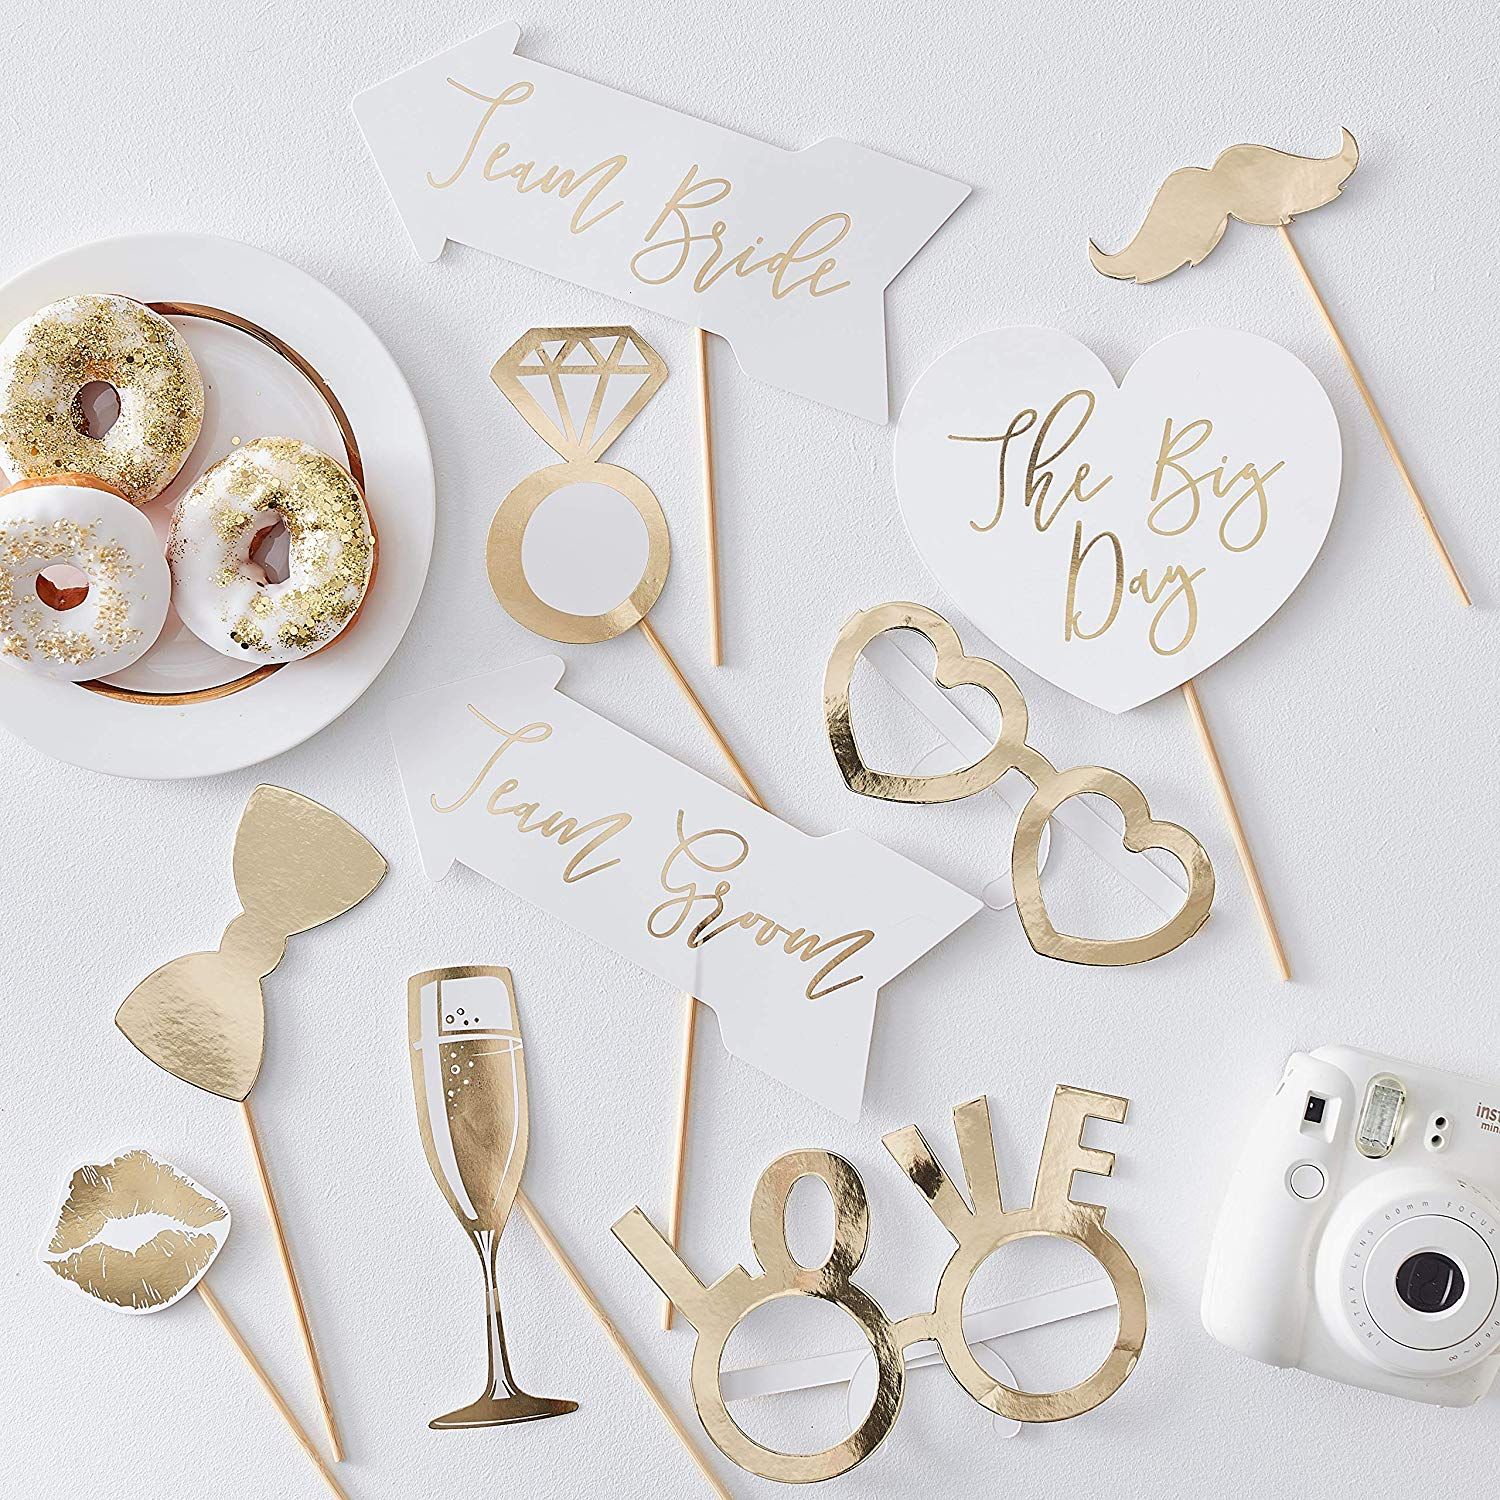 These photo booth props look so classy, and they're only $8 for 10!